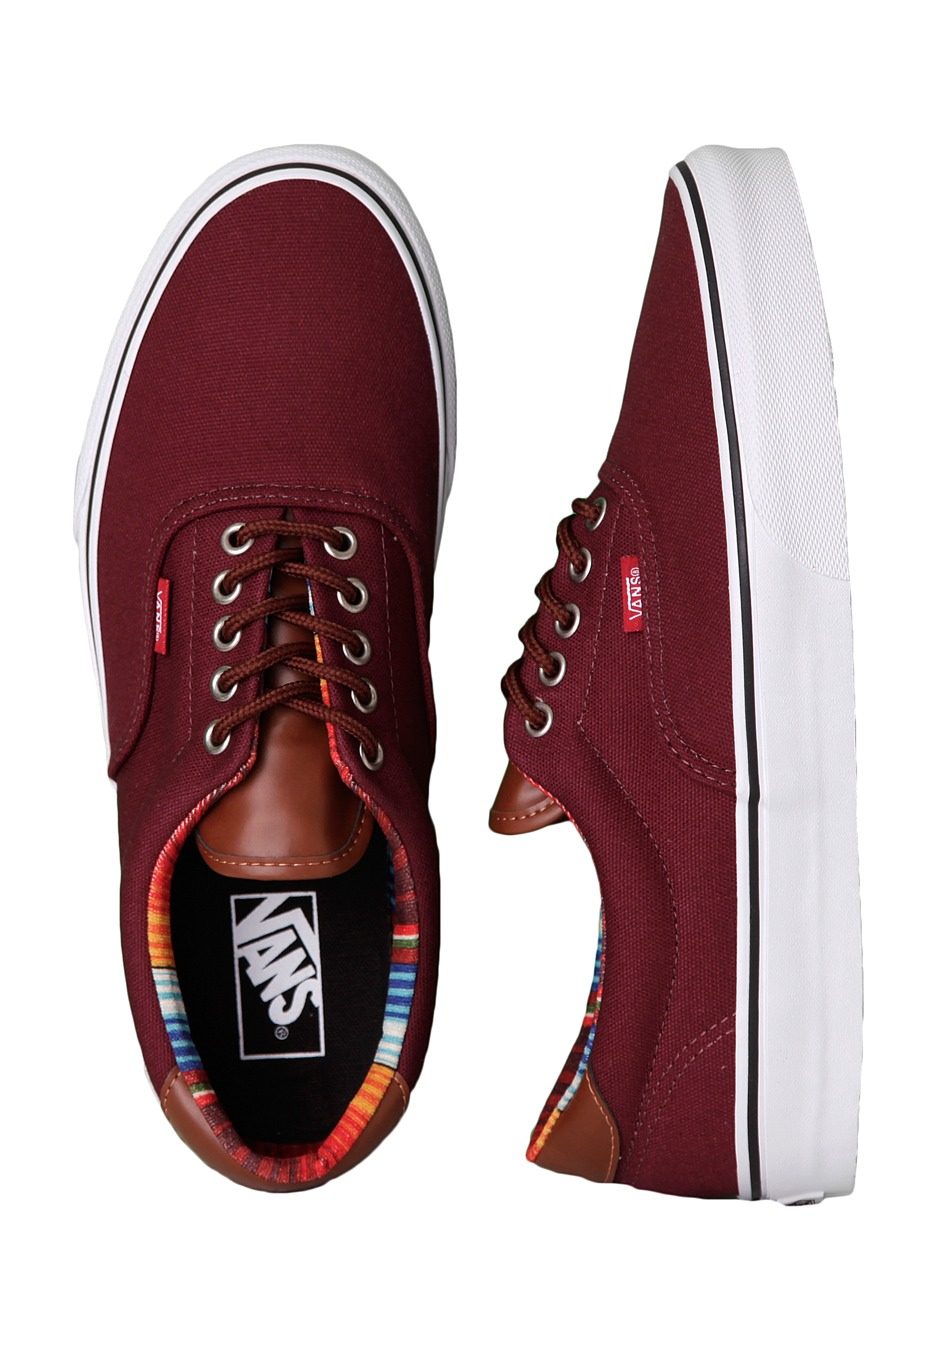 138e09774e0 Vans - Era 59 C L Port Royale Multi Stripe - Shoes - Impericon.com UK